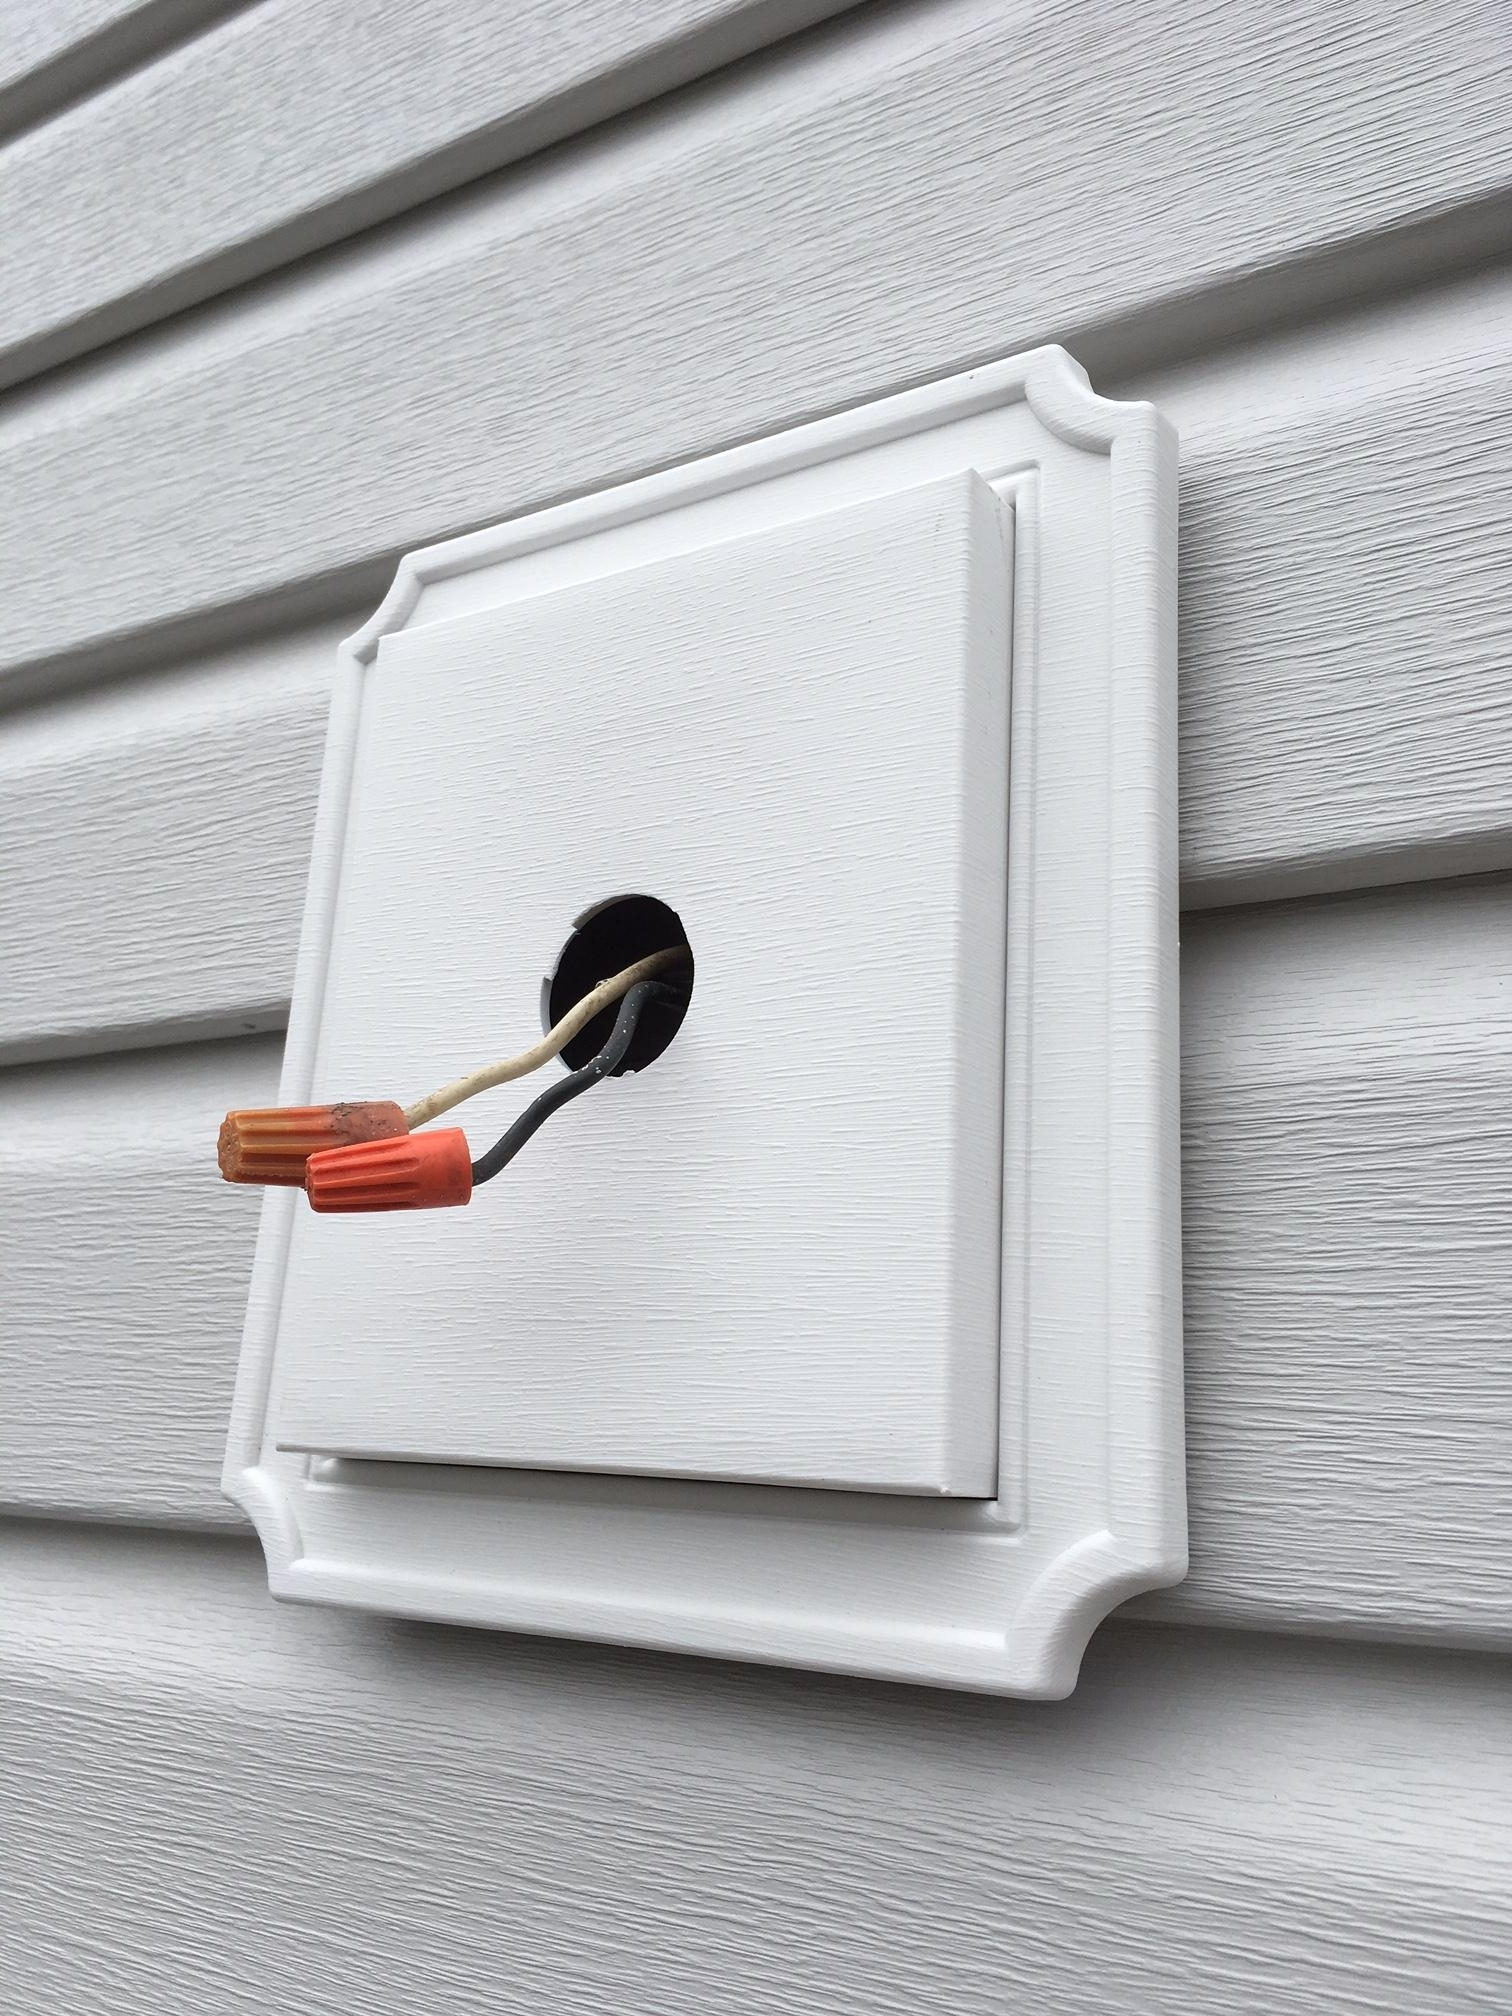 Best And Newest Lighting – Exterior Lights On New Siding, No Electrical Box To Screw With Hanging Outdoor Lights On Vinyl Siding (View 1 of 20)